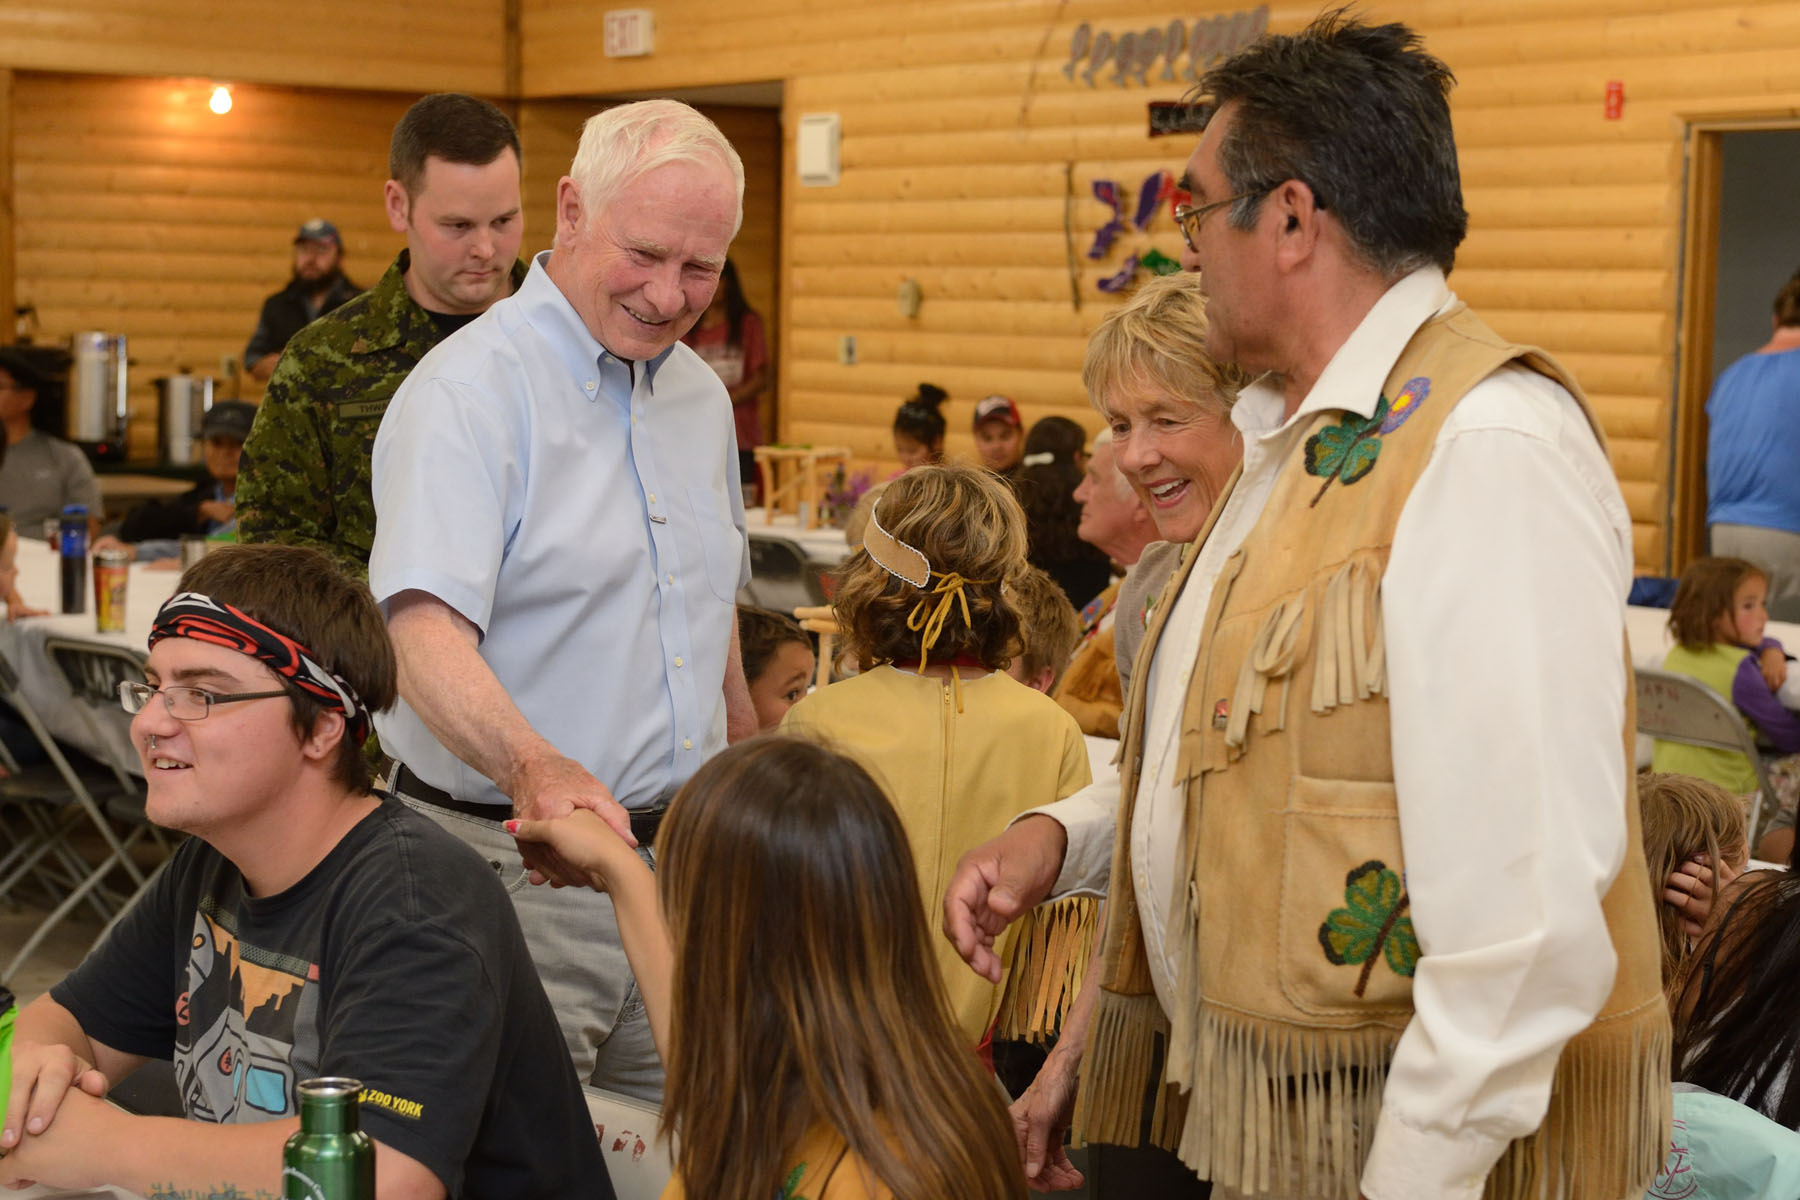 During this community dinner, Their Excellencies met with members of the community who are taking part in an eight-day hike from Neskatahin to Hutchi.